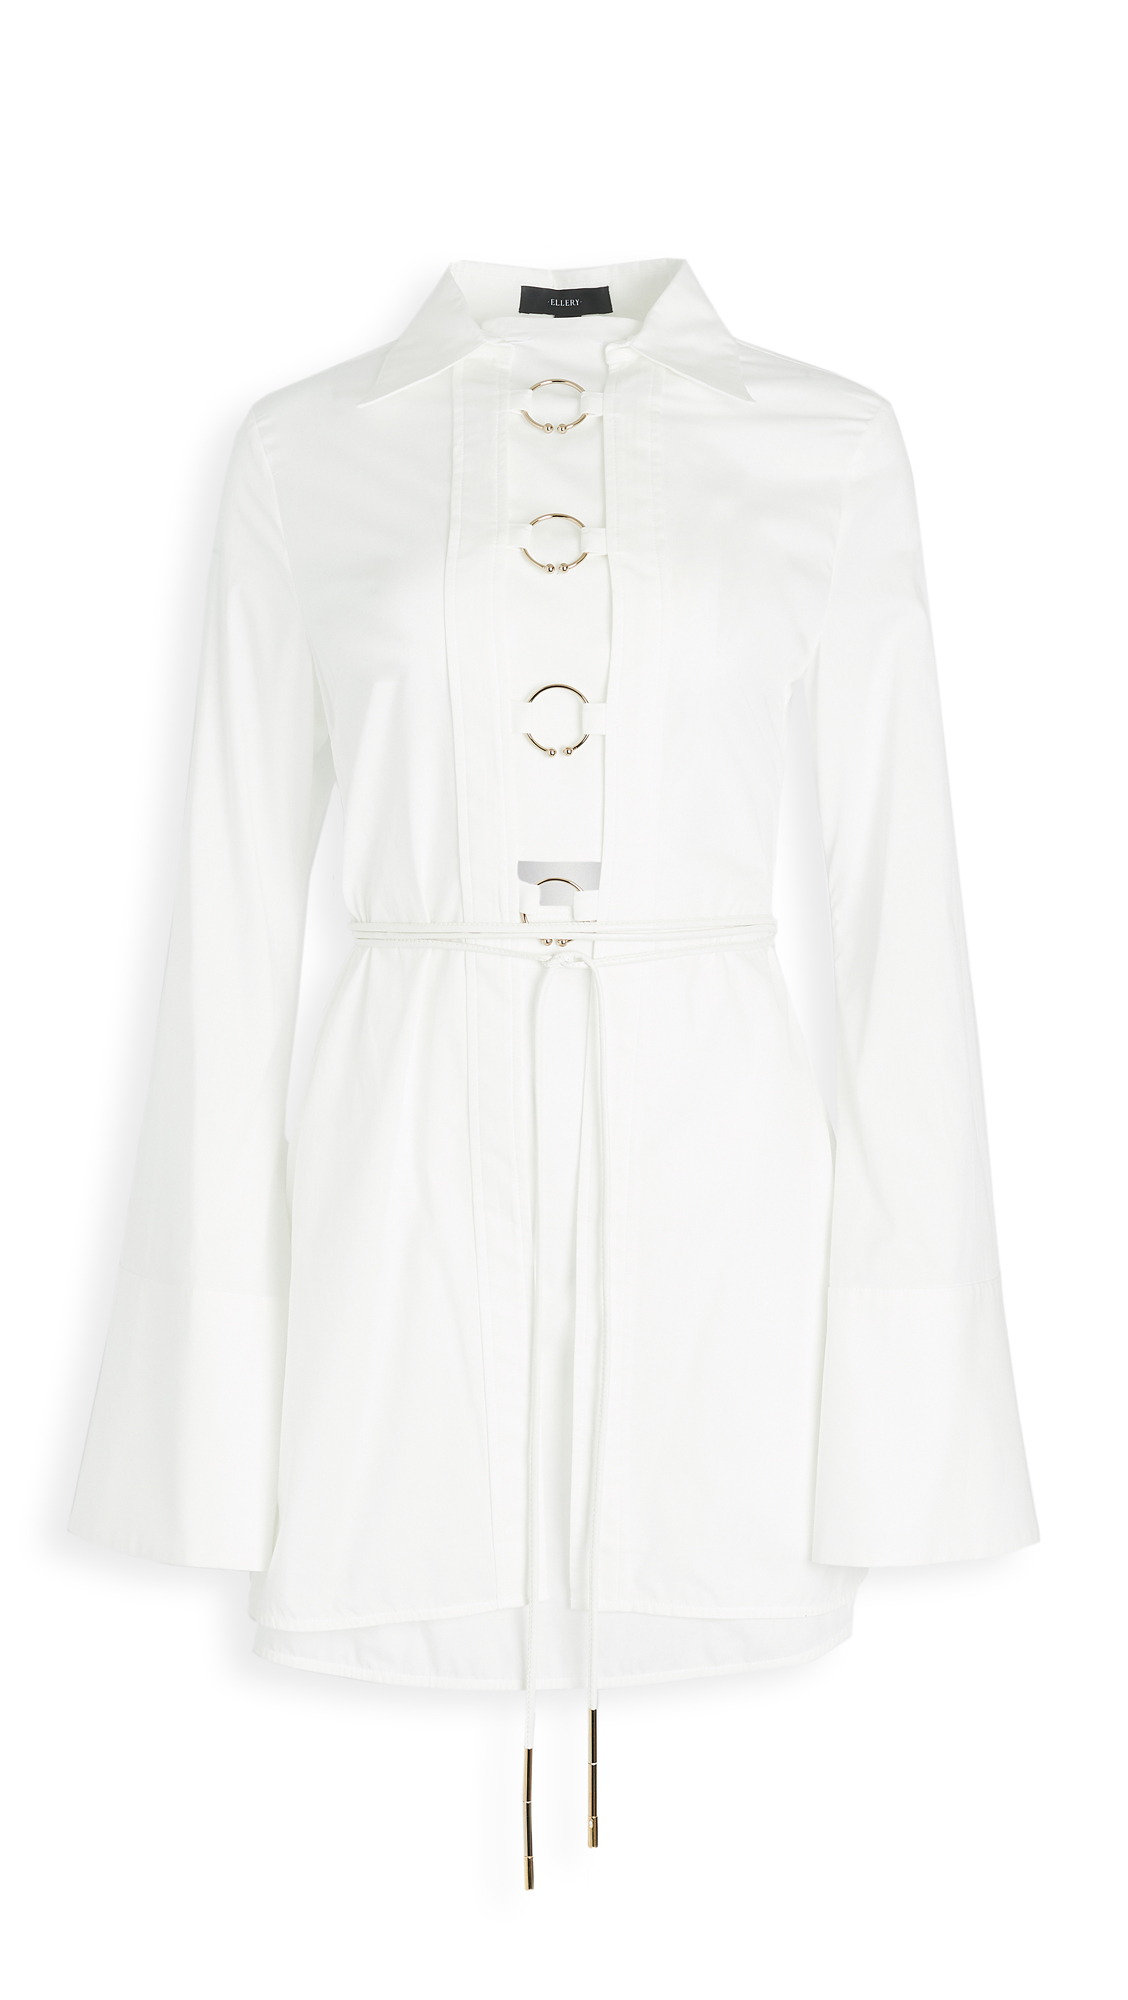 Ellery Samos Shirtdress with Rings - 20% Off Sale